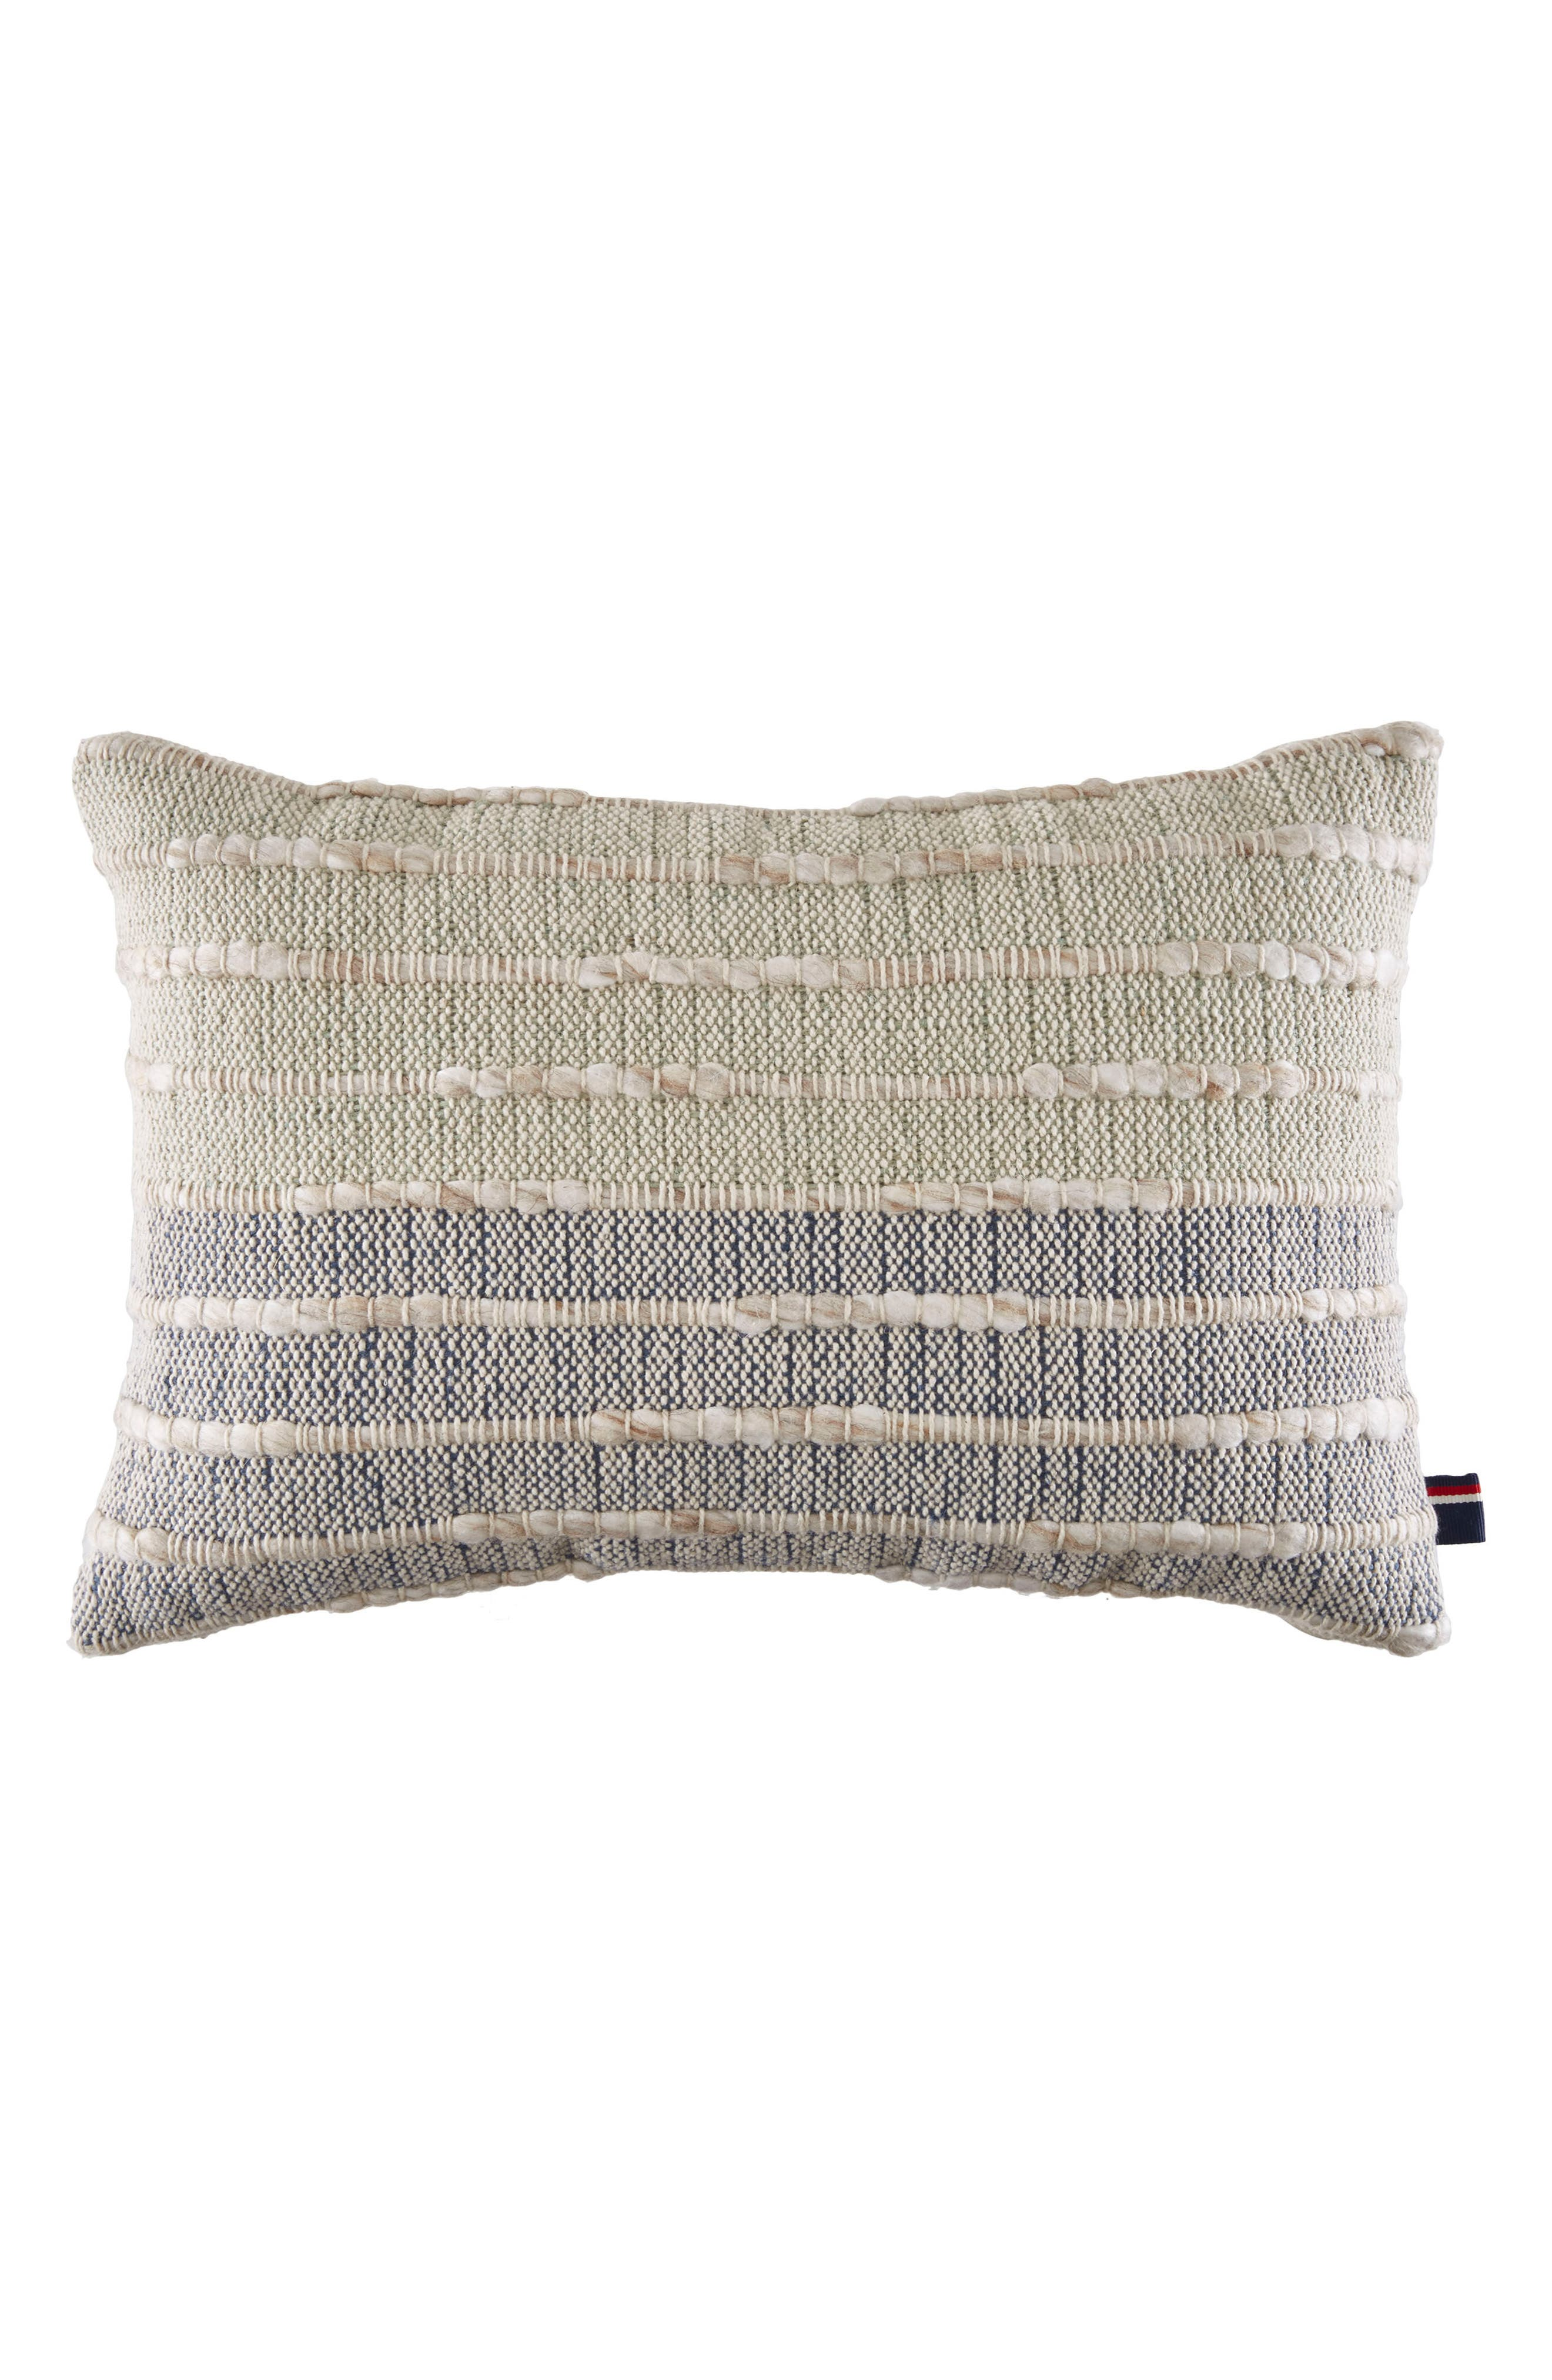 Alternate Image 1 Selected - Tommy Hilfiger Ombré Indigo Accent Pillow